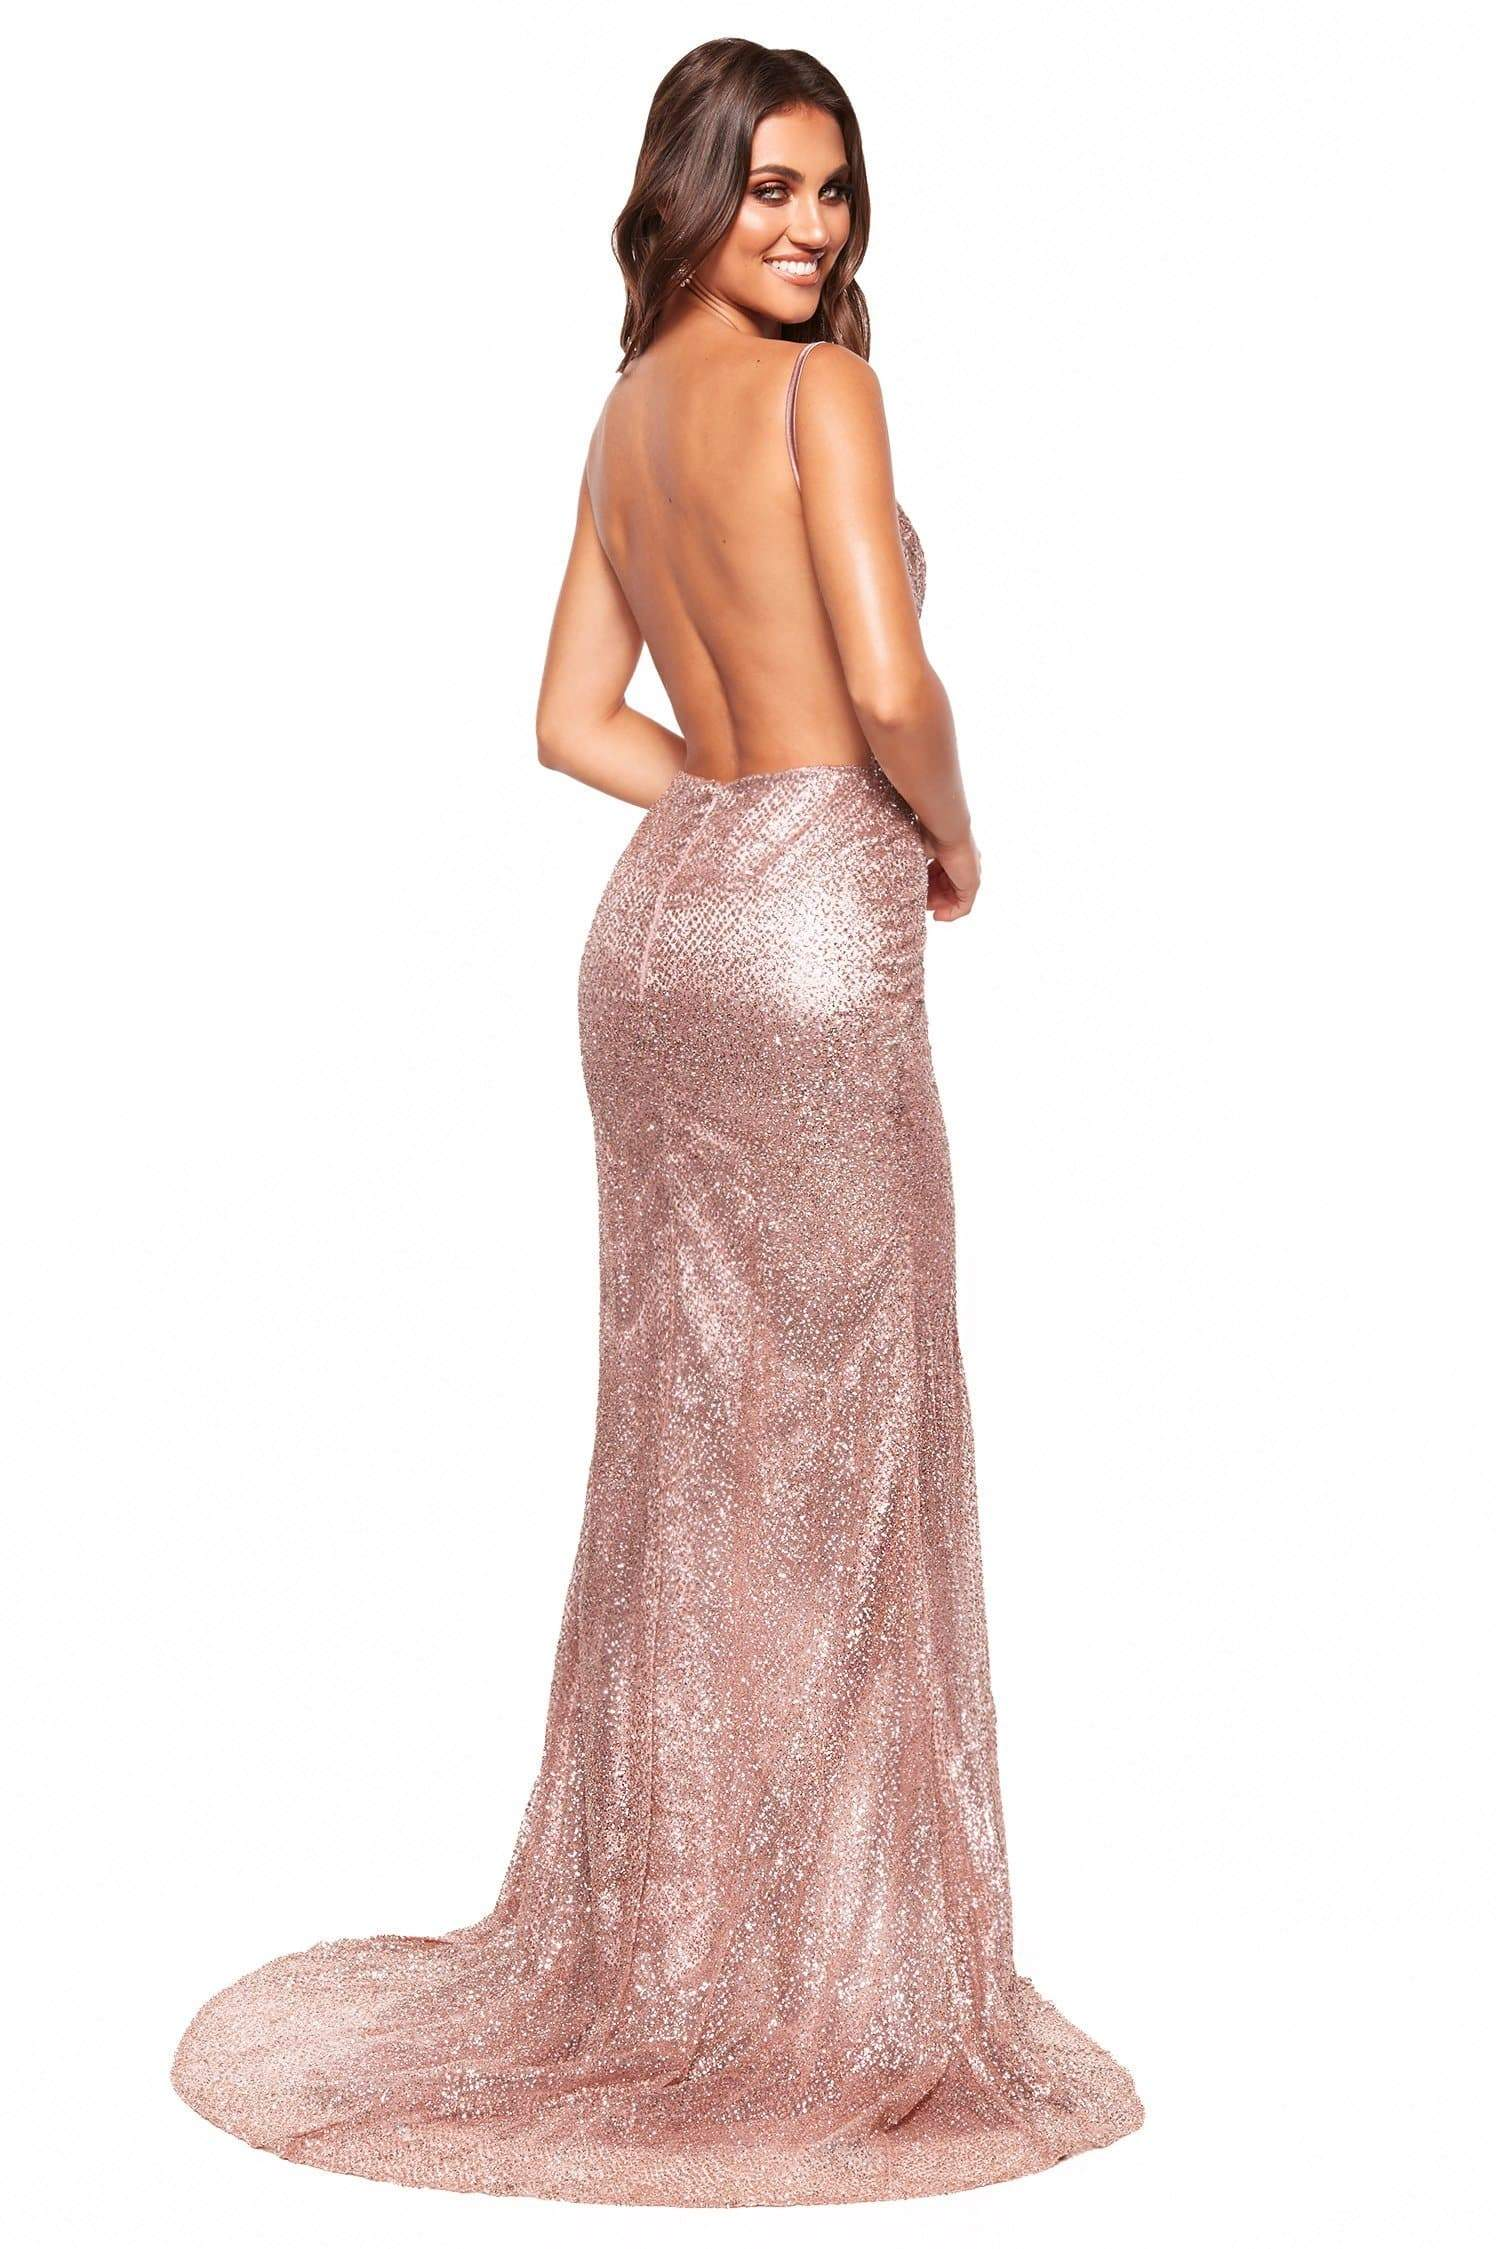 A&N Luxe Evaliah - Rose Gold Glitter Gown with Side Slit & Low Back